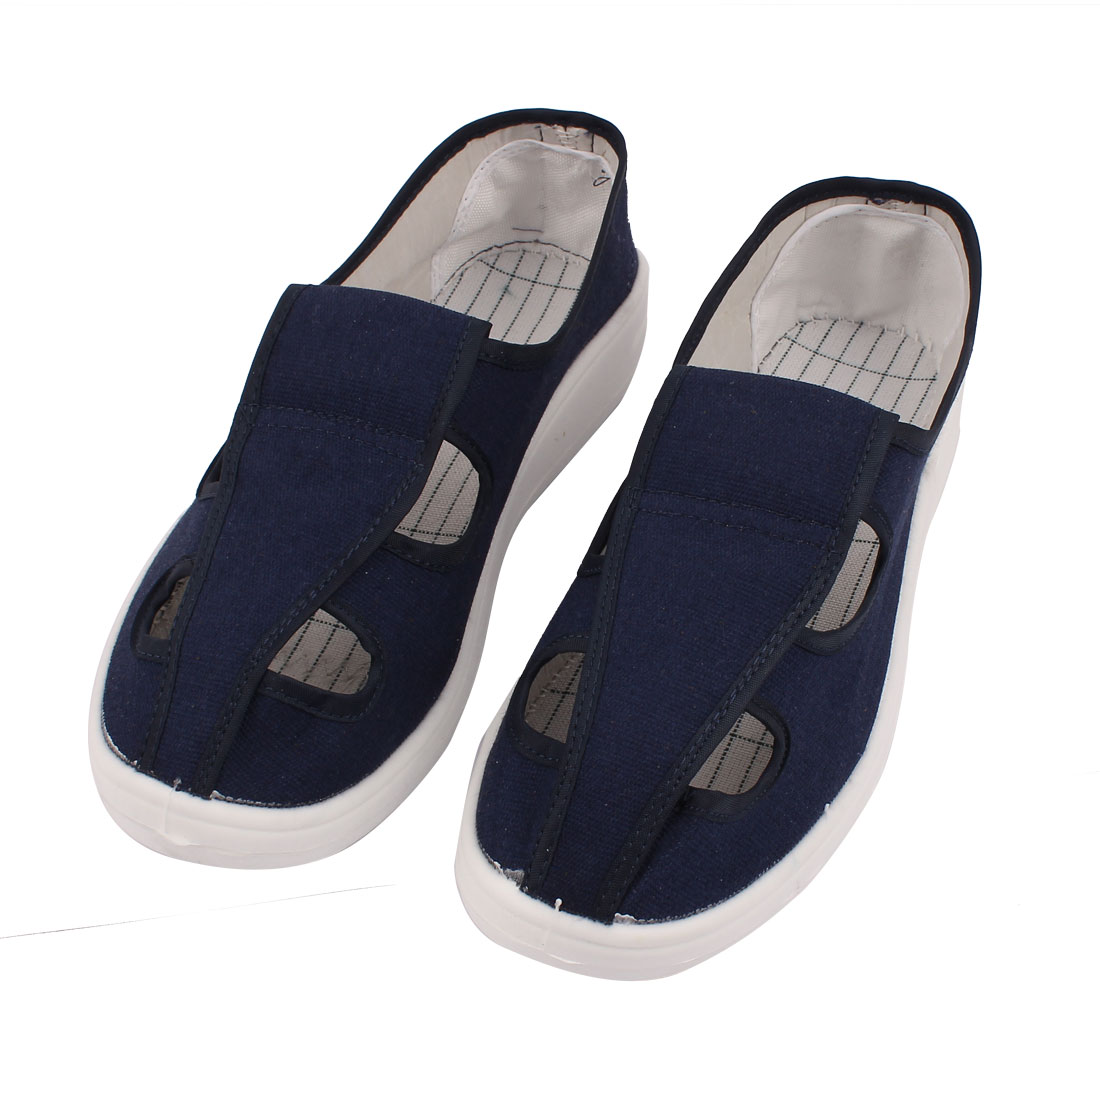 US12 UK11.5 EU45 PVC Nonslip Flat Sole Anti-static 4-Hole Canvas Shoes